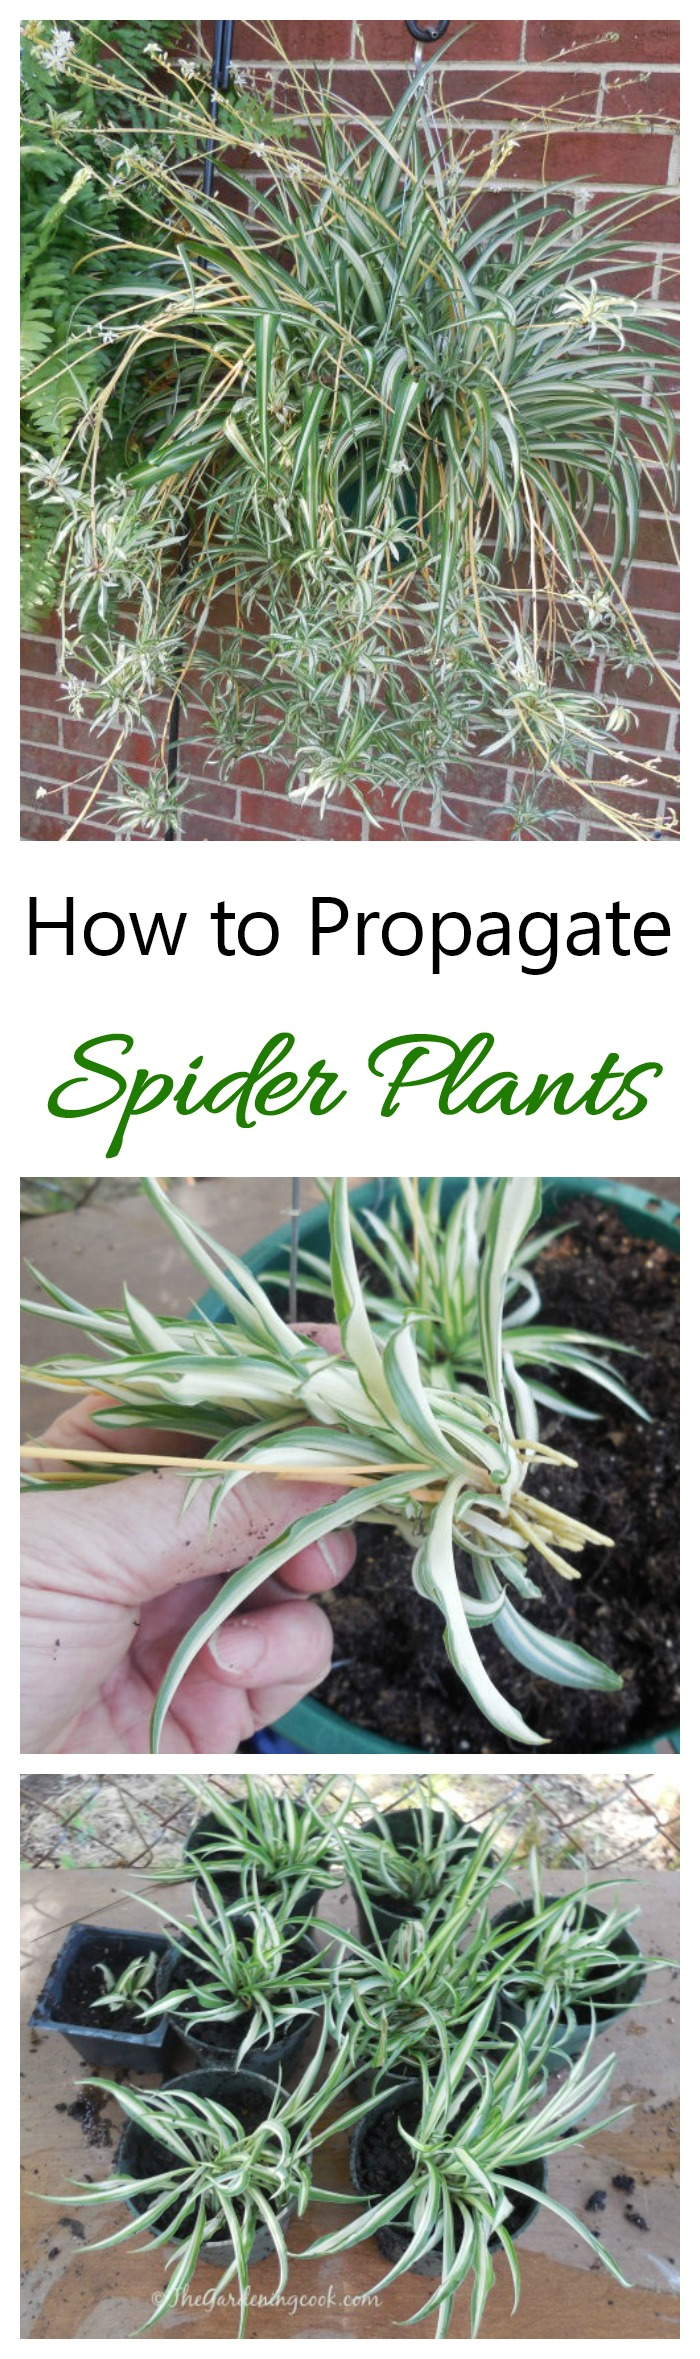 To get plants for free, learn how to propagate spider plants from their babies. It's easy to do and fun as well.